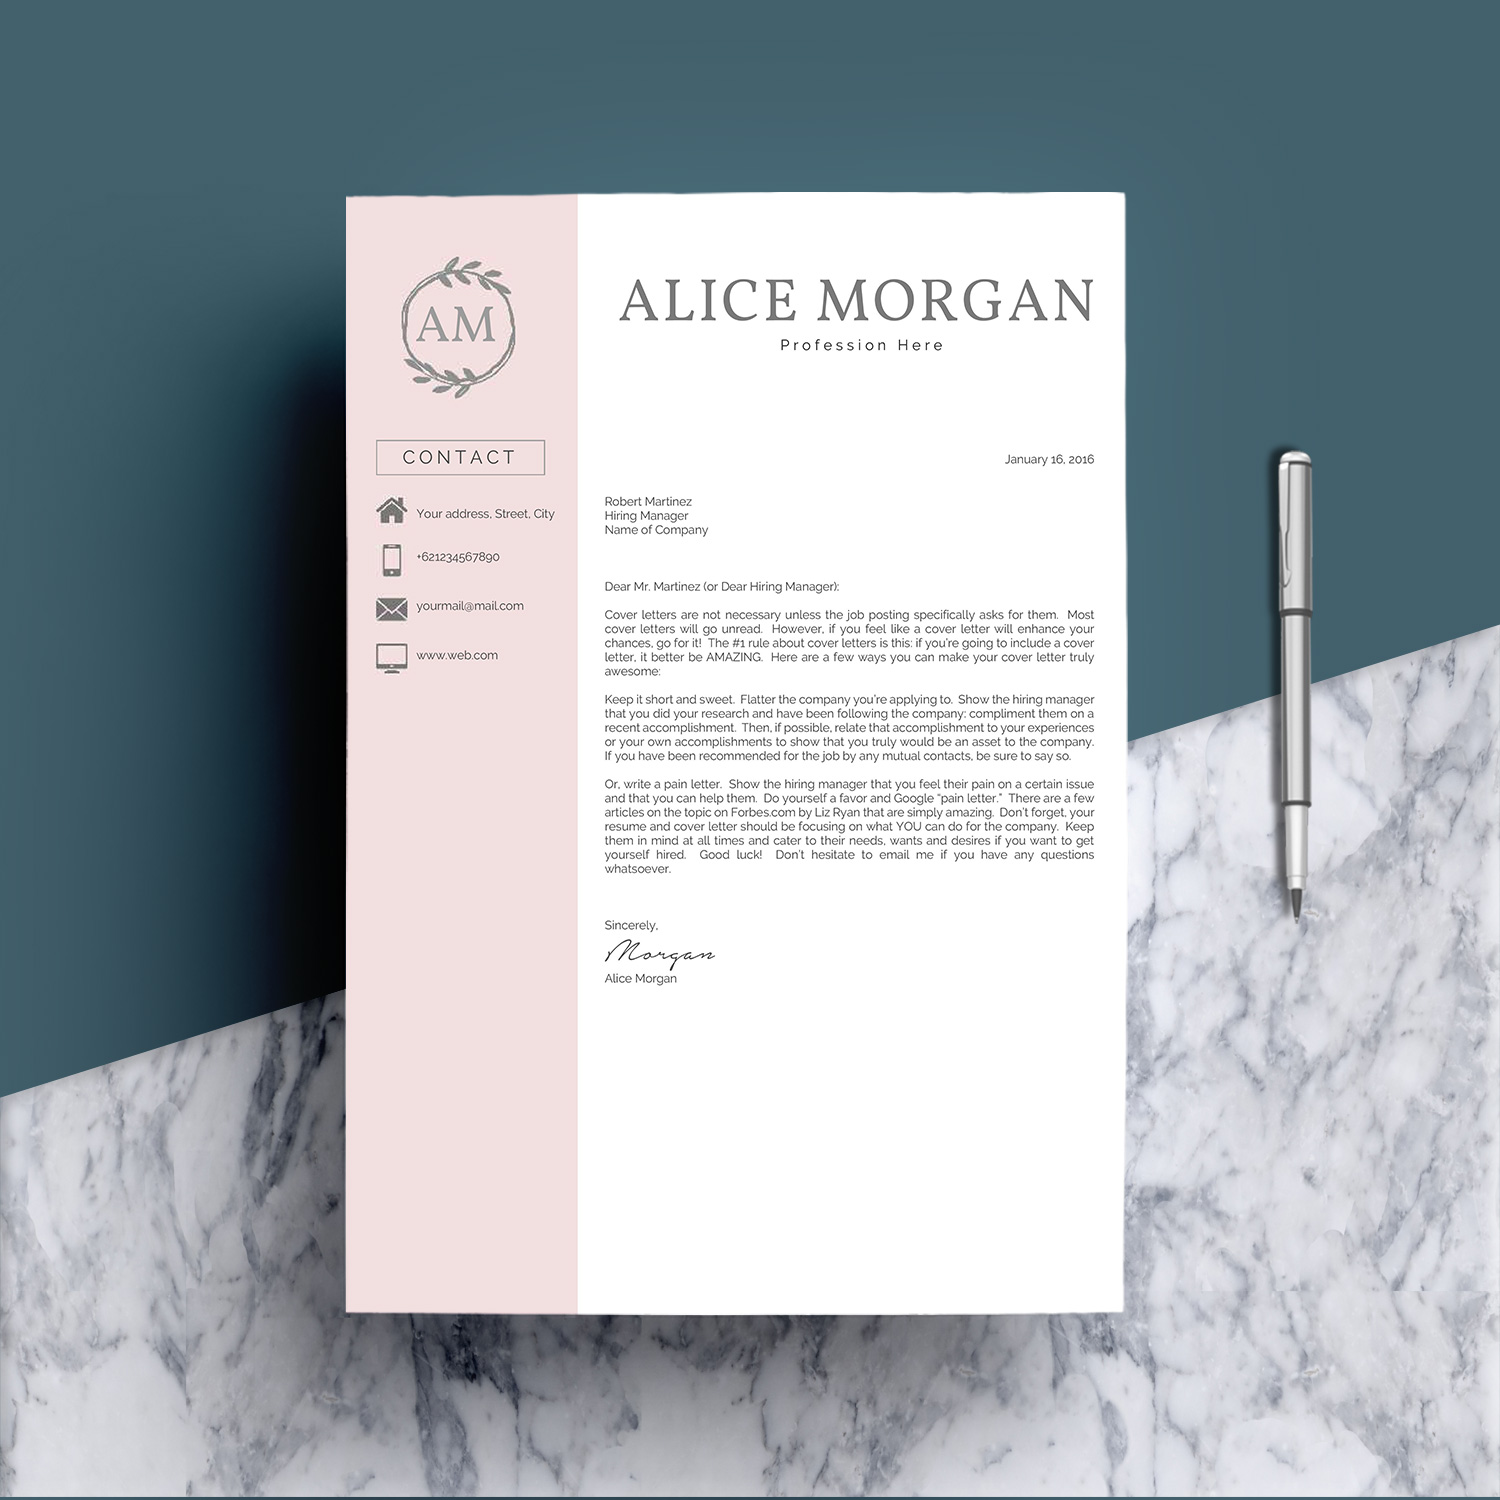 Professional Creative Resume Template - Alice Morgan example image 5